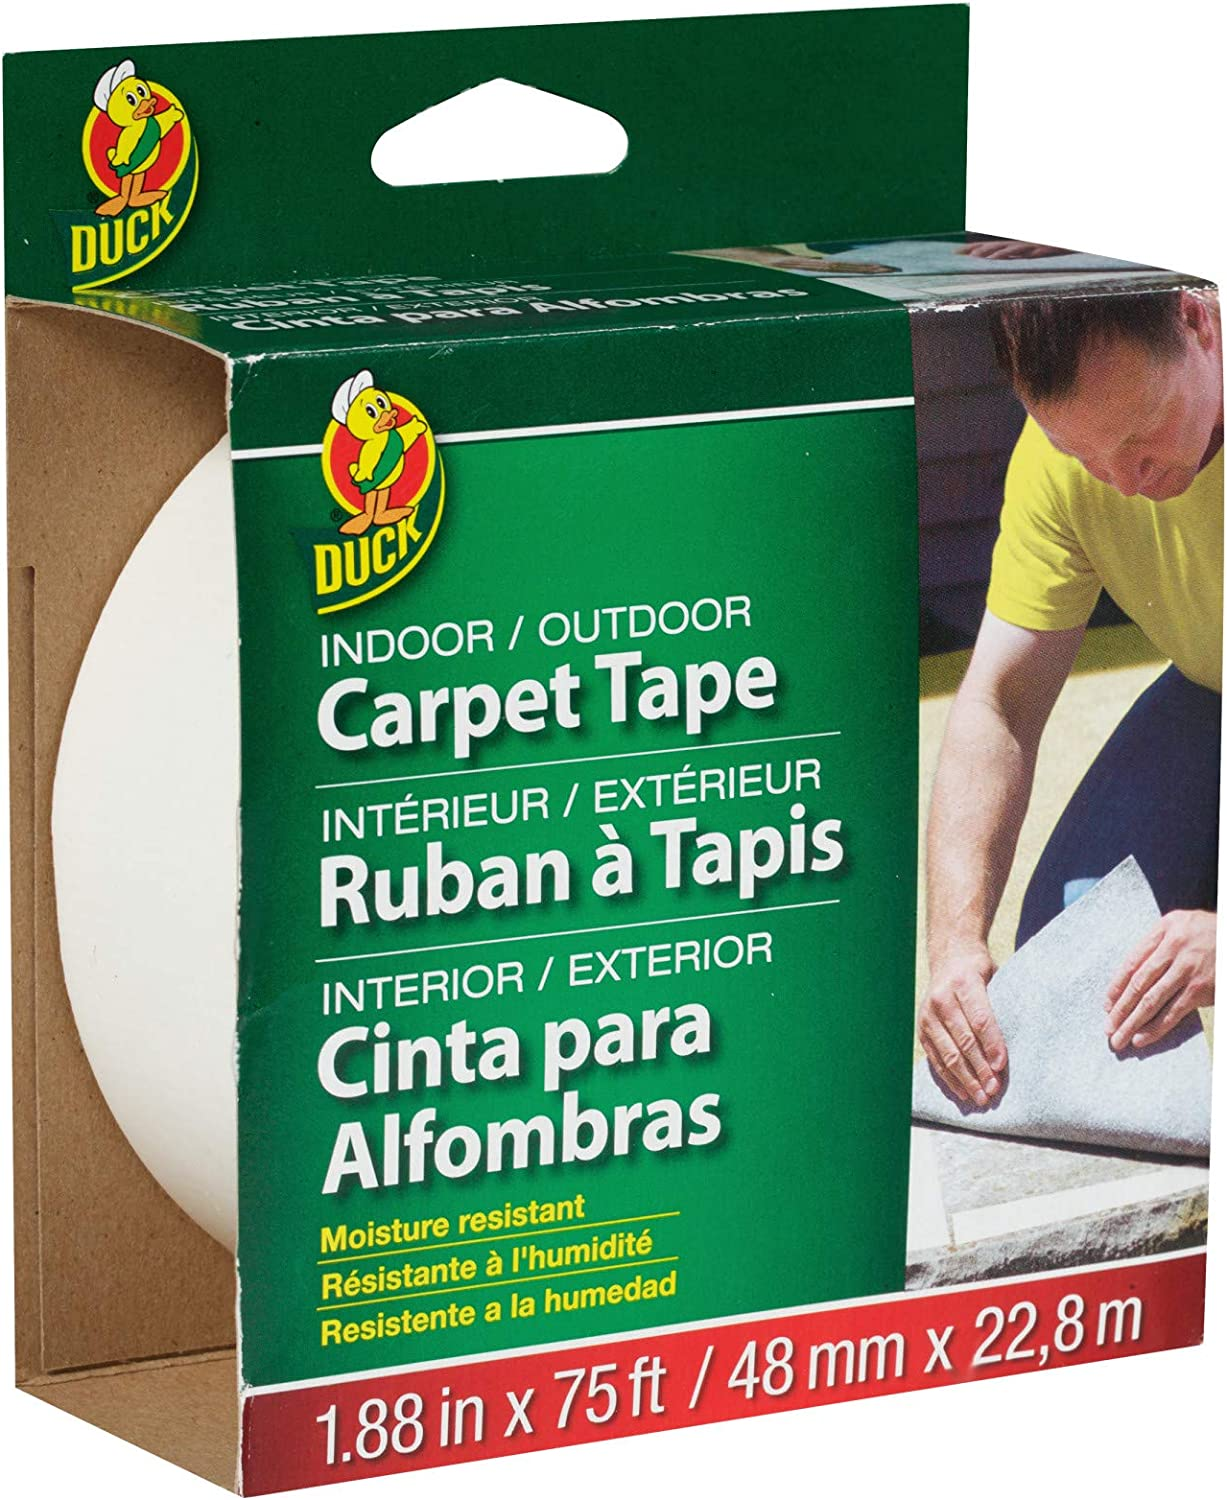 Duck Challenge the Fresno Mall lowest price of Japan Brand 442062 Indoor Outdoor Carpet Fee 1.88-Inch x Tape 75